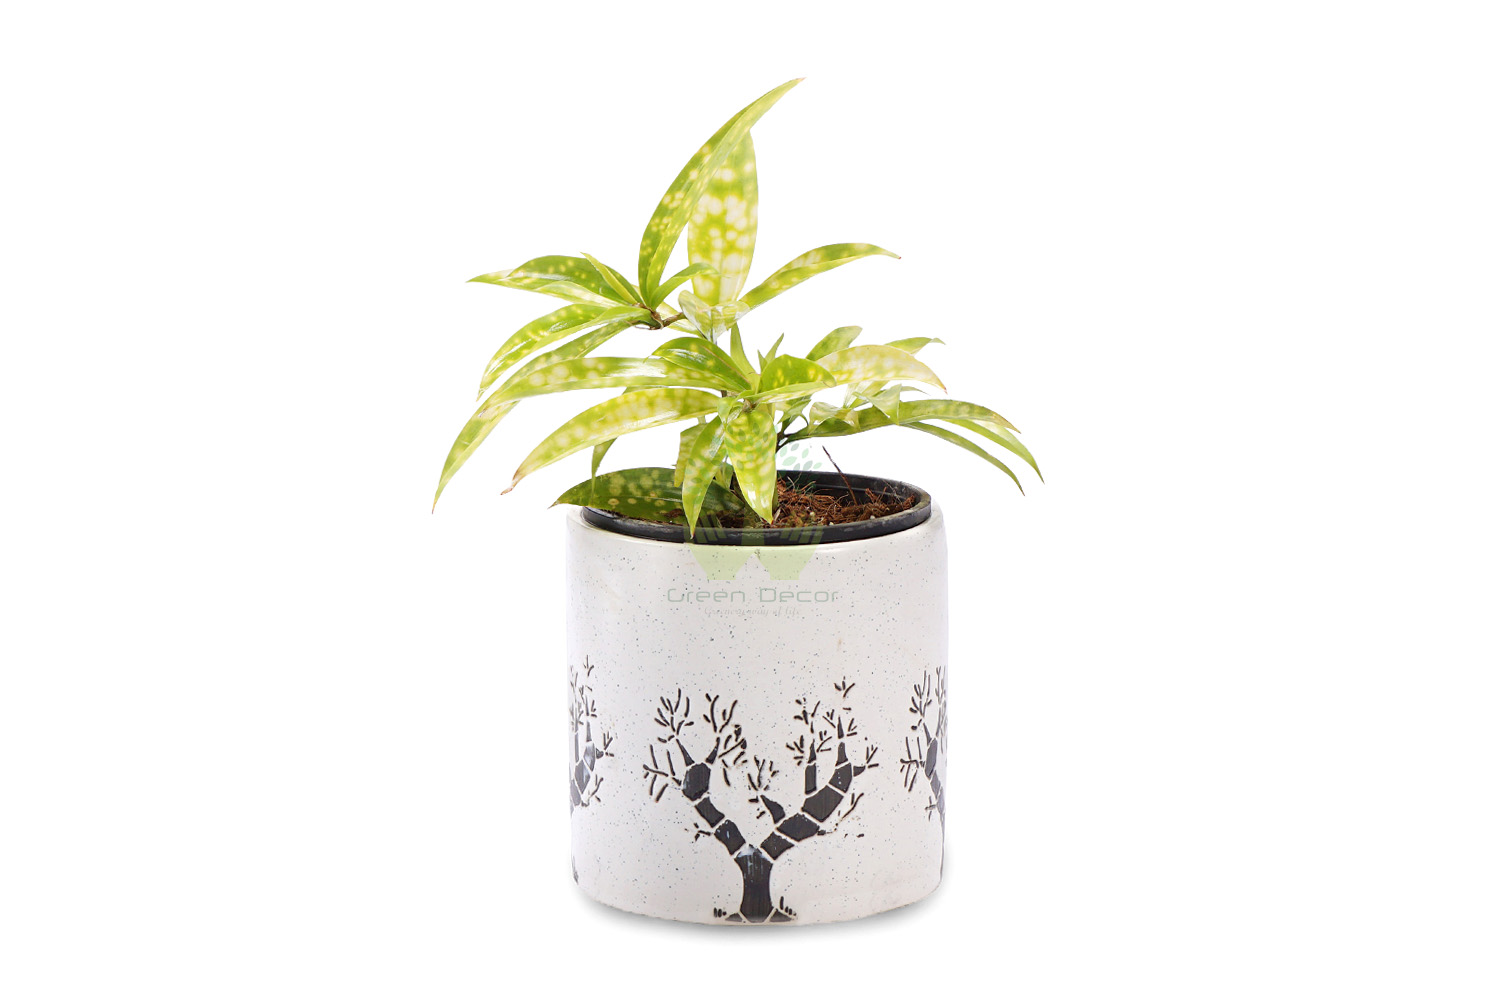 Buy Croton Codiaeum Plants , White Pots and seeds in Delhi NCR by the best online nursery shop Greendecor.